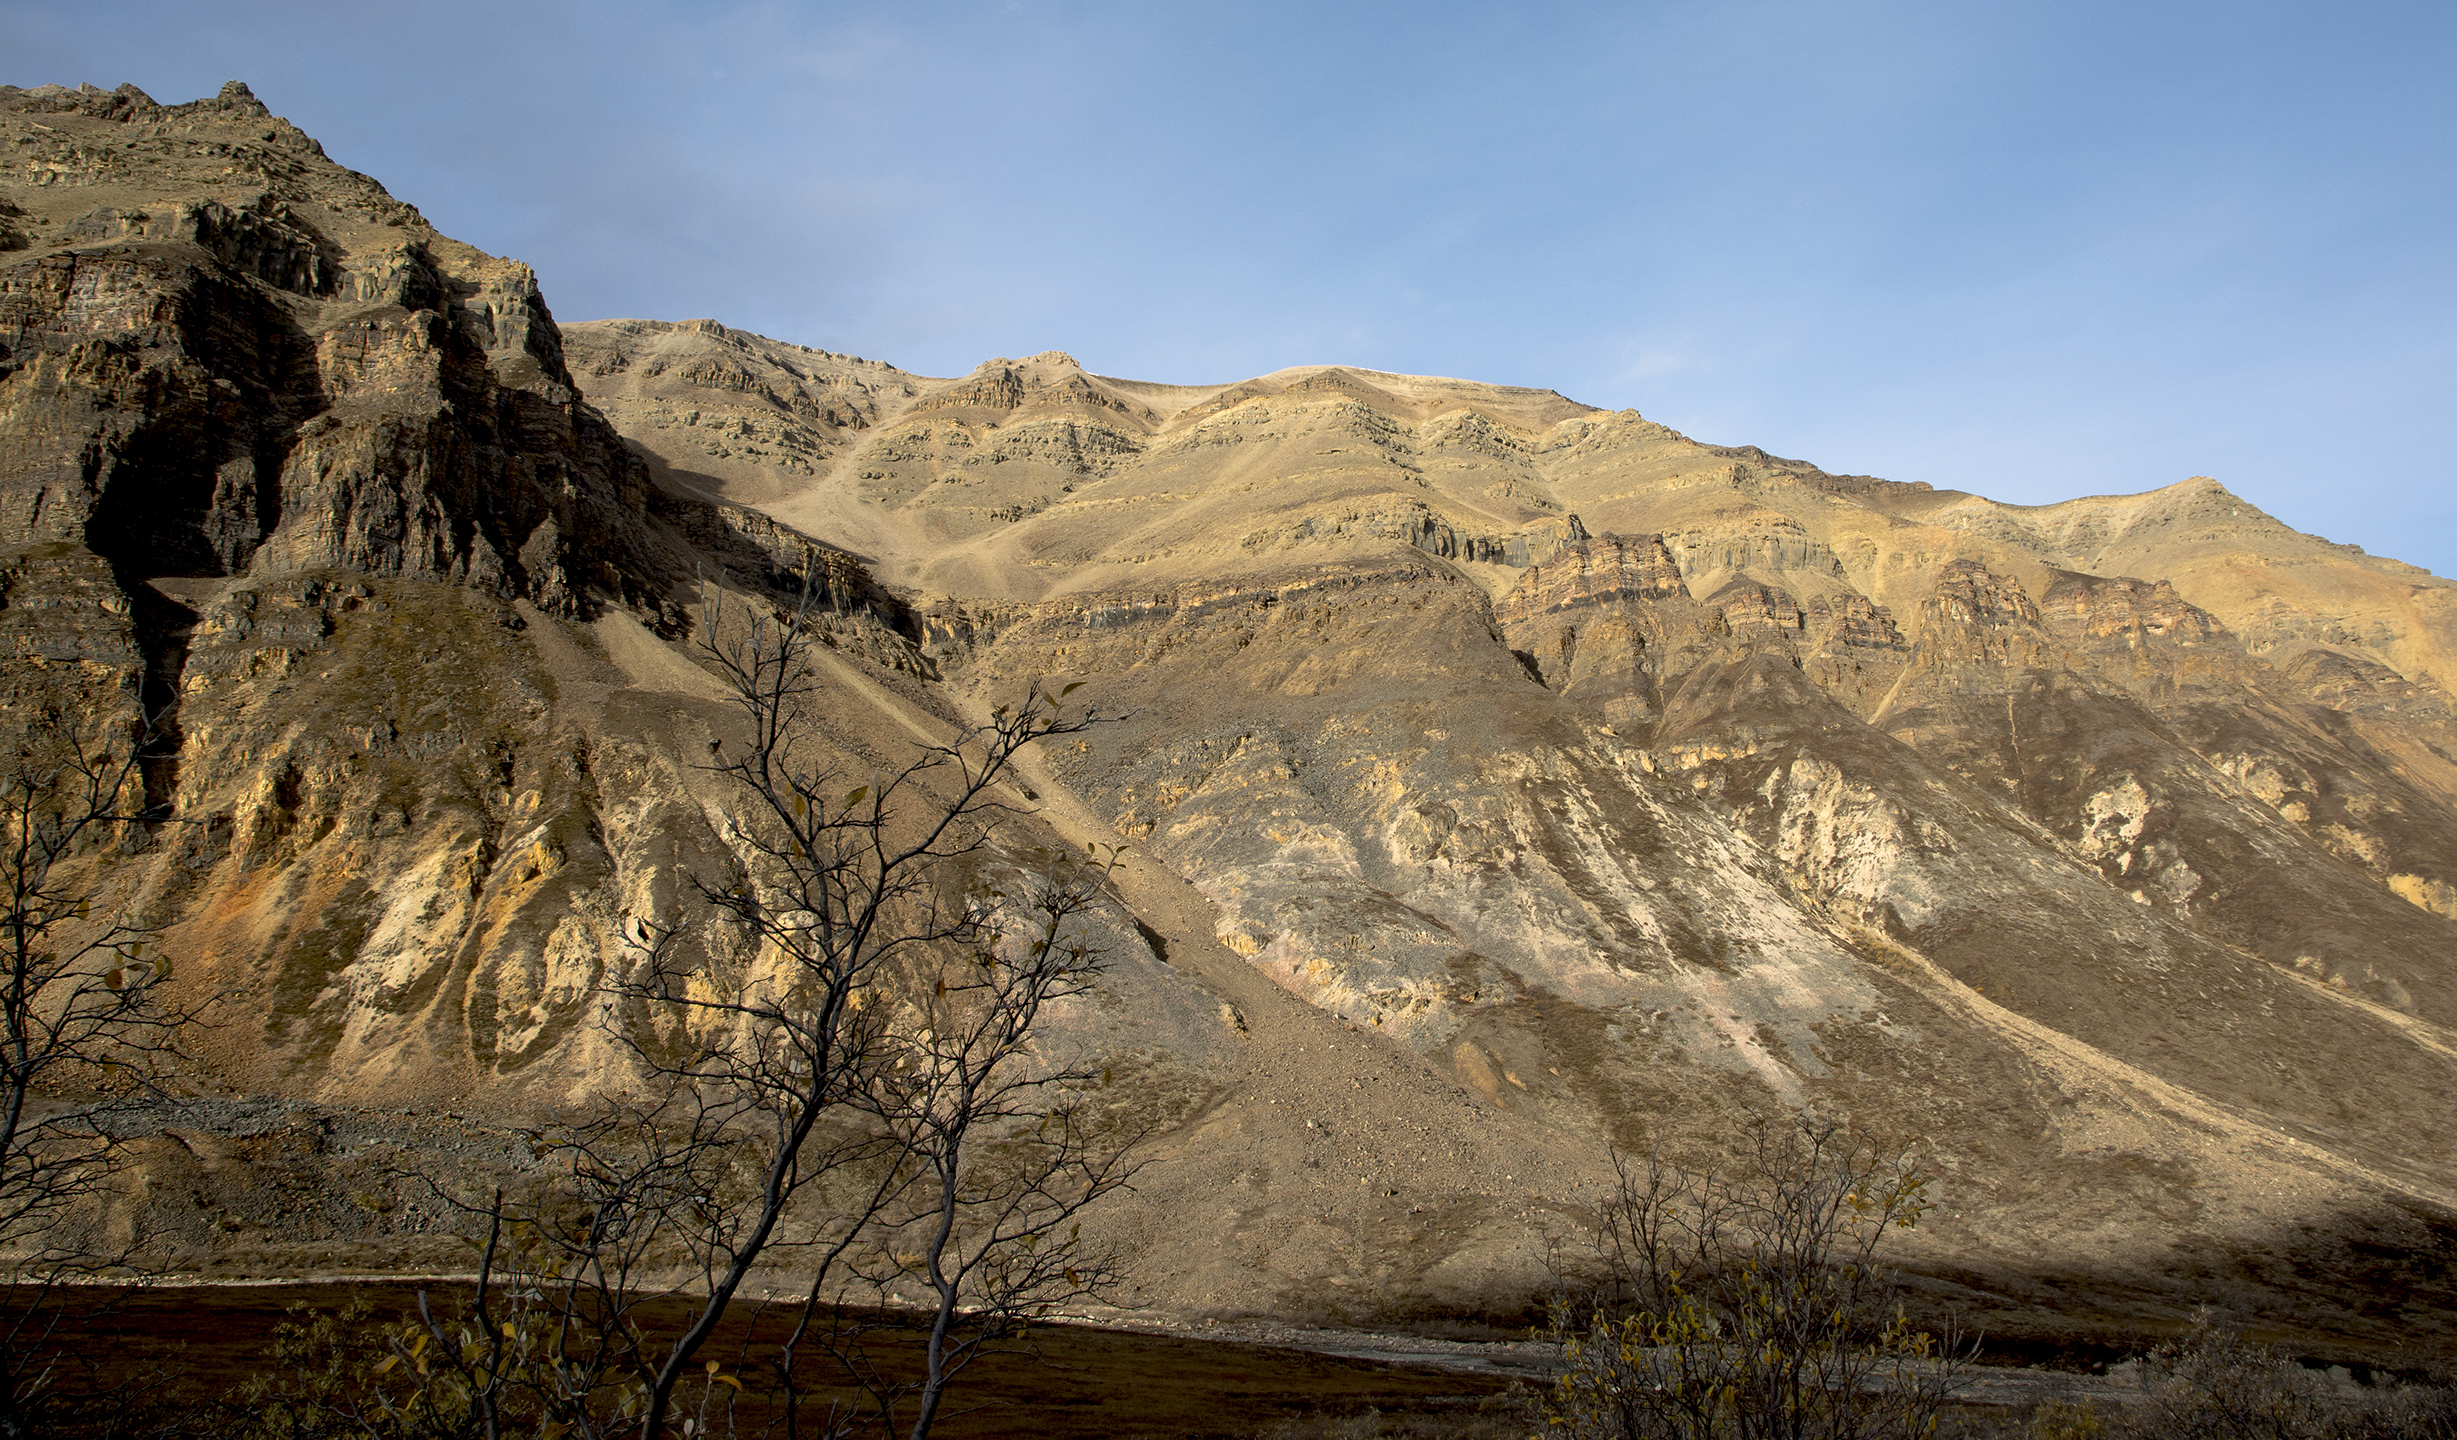 The ram's citadel. My ram is feeding above the center band of cliffs. Can you see him? Tav did.